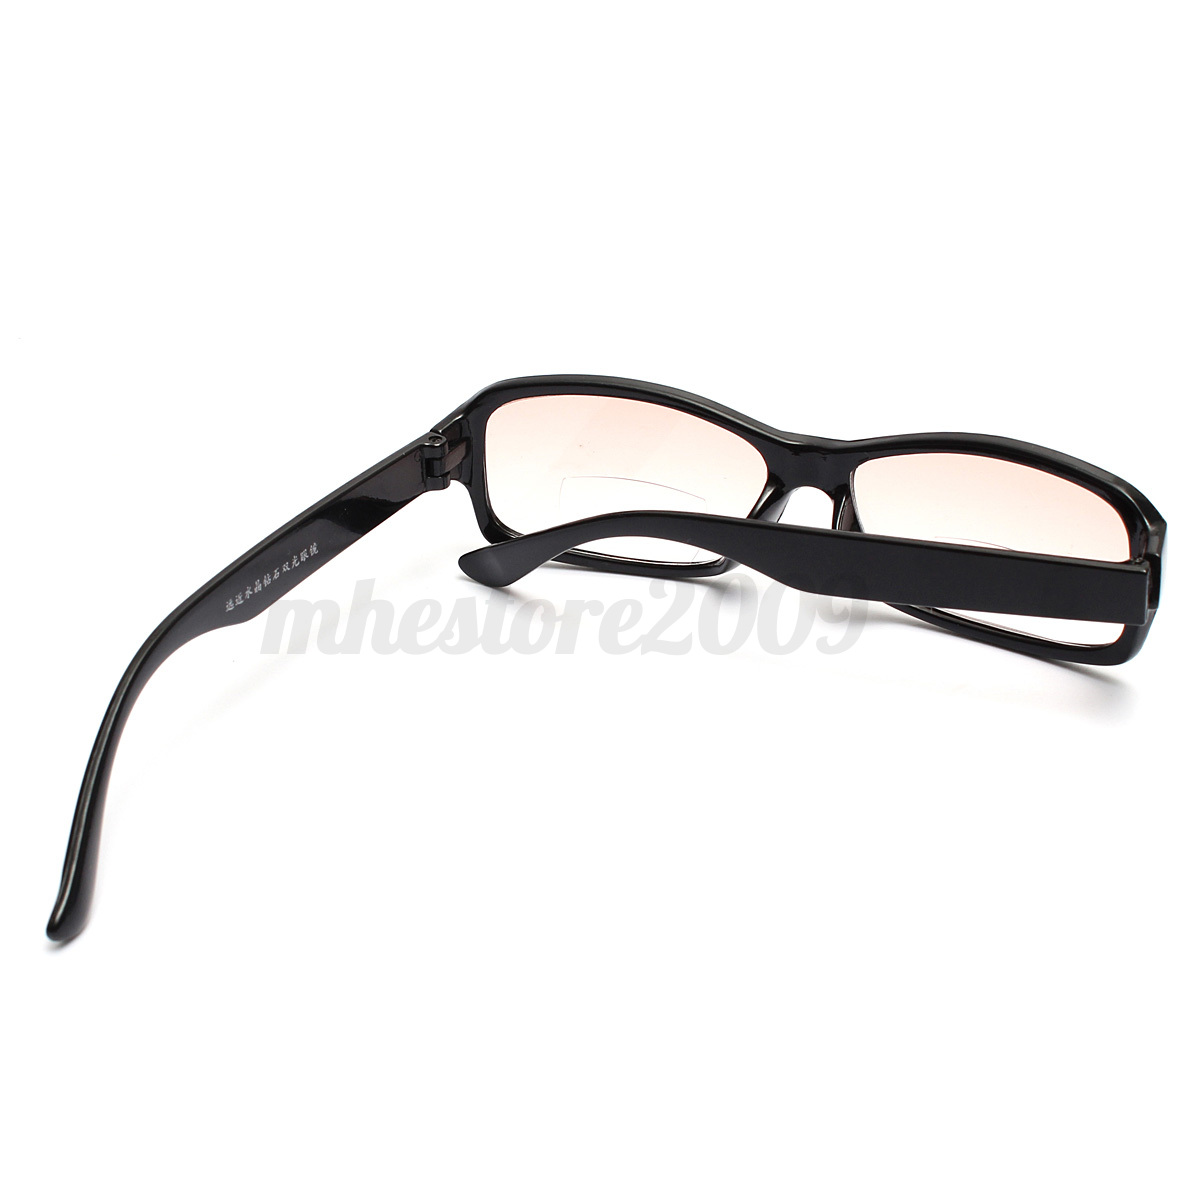 unisex lightweight dual function bifocal reading glasses